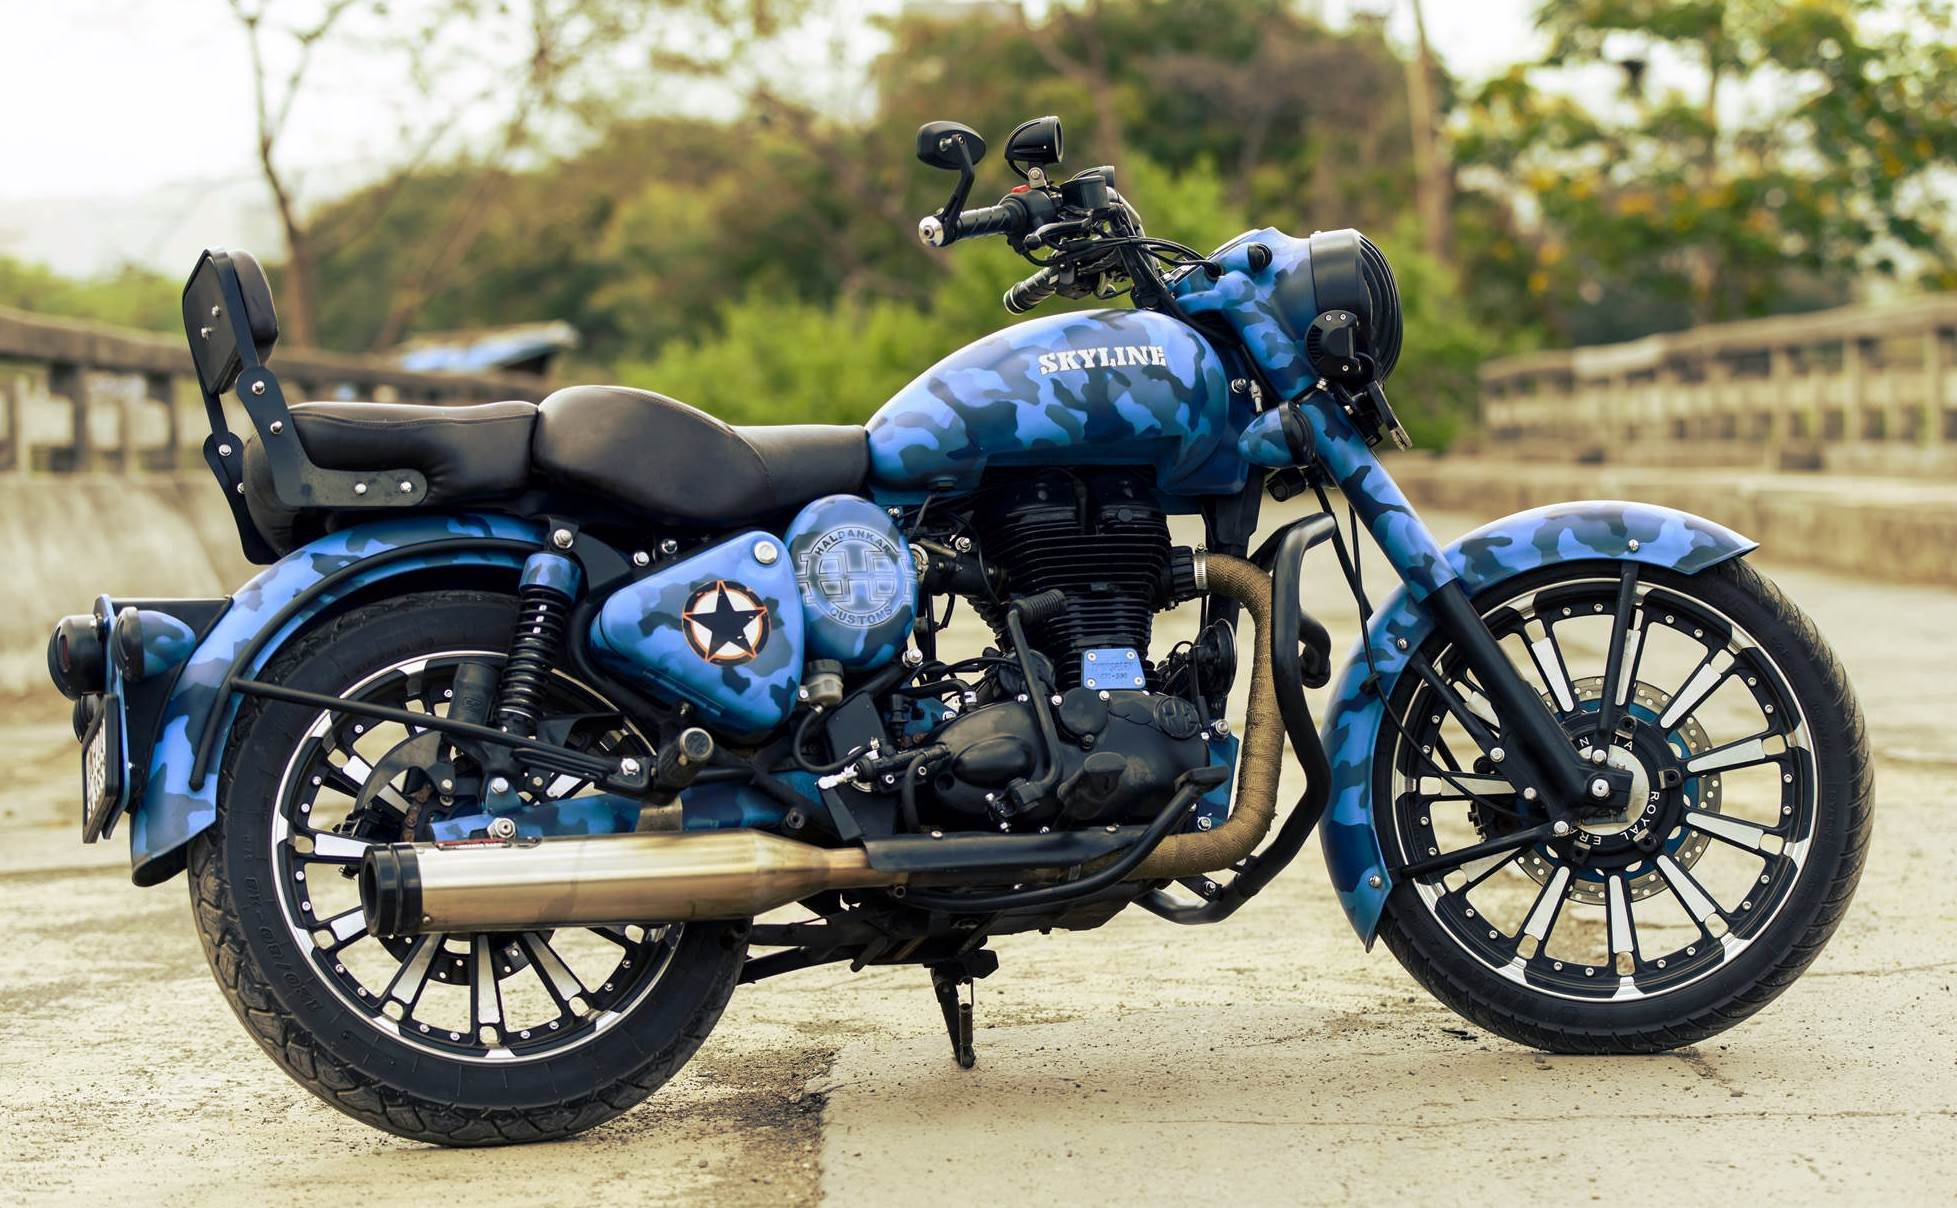 Skyline Royal Enfield Classic 500cc With Camouflage Paint 350cccom